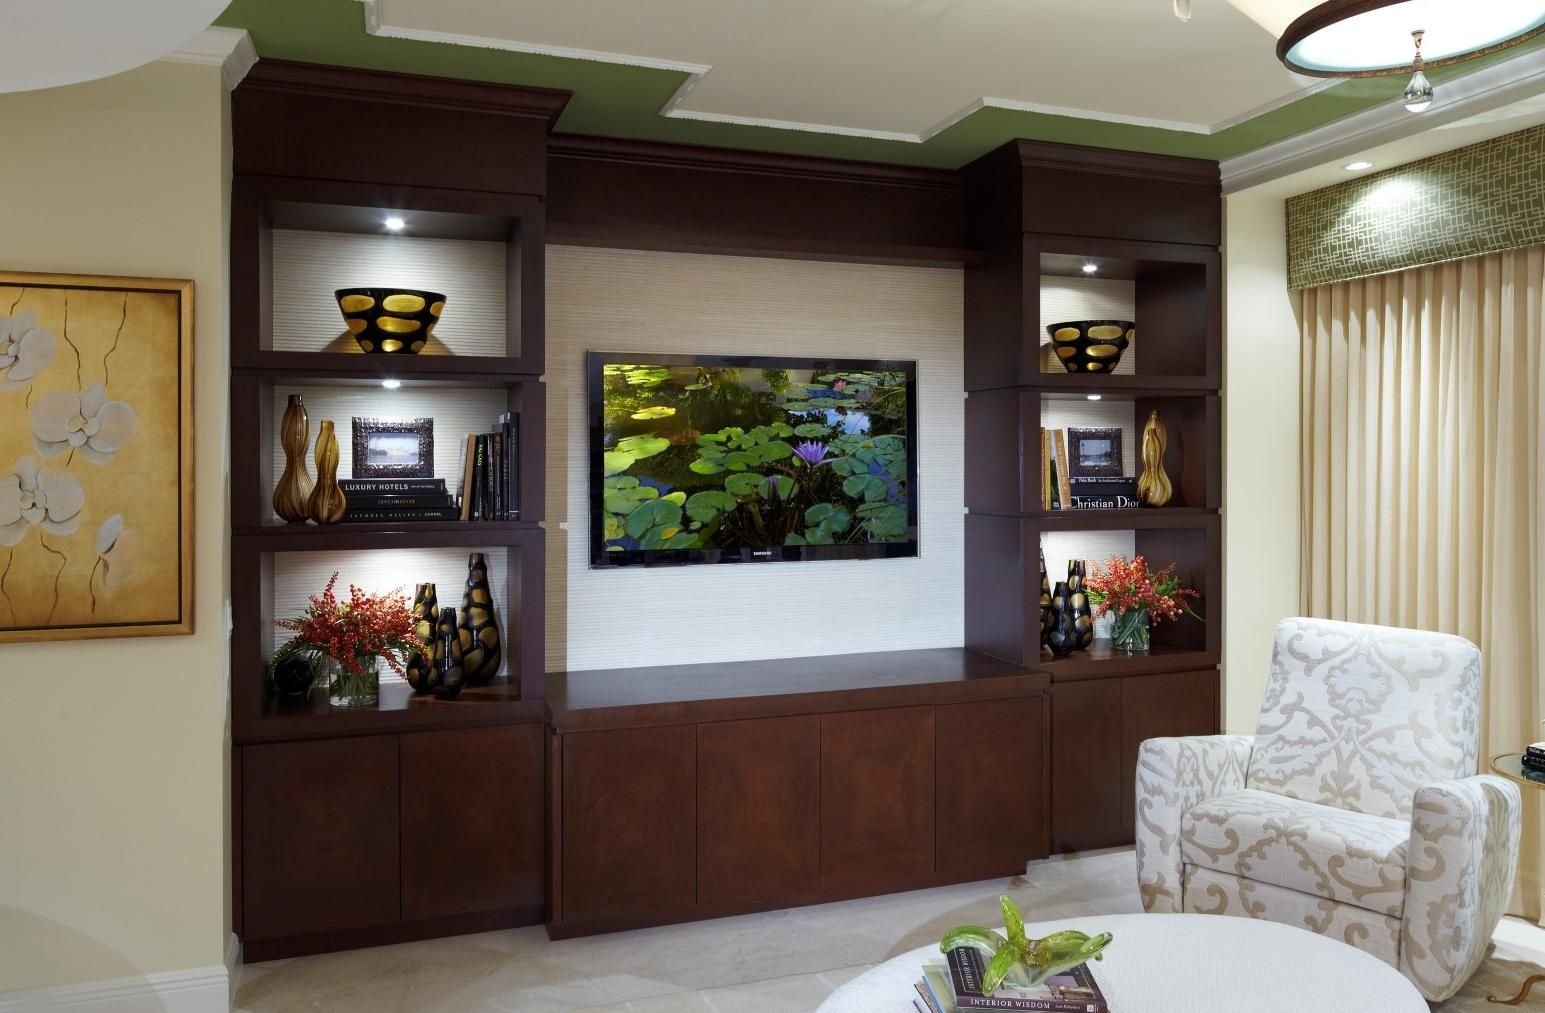 living room entertainment center ideas Google Search Ideas for